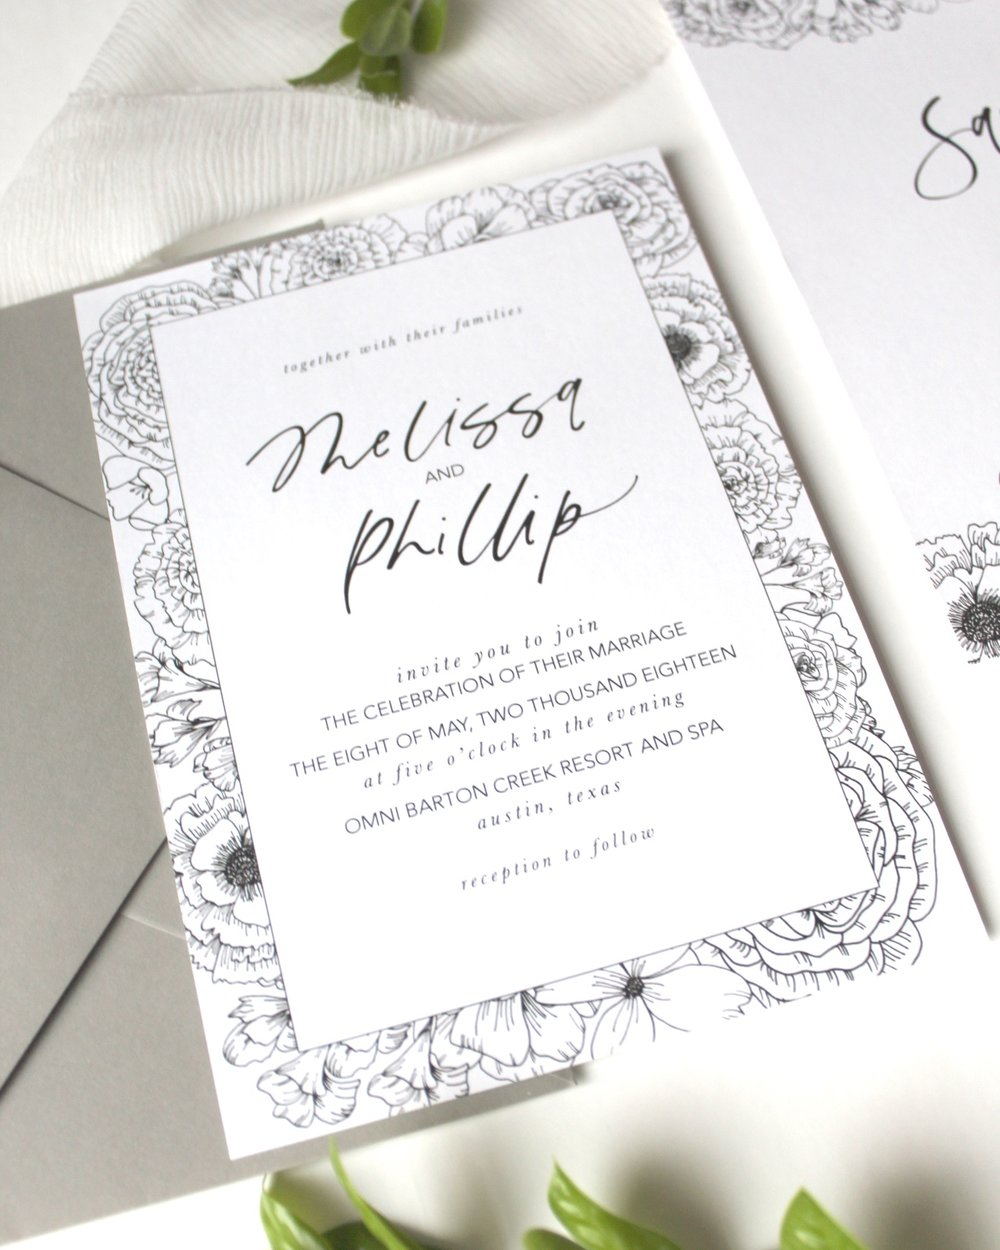 The Melissa Floral - This semi-custom modern calligraphy invitation features hand-drawn floral illustrations and traditional calligraphy lettering, it is definitely a suite that your guests will remember.